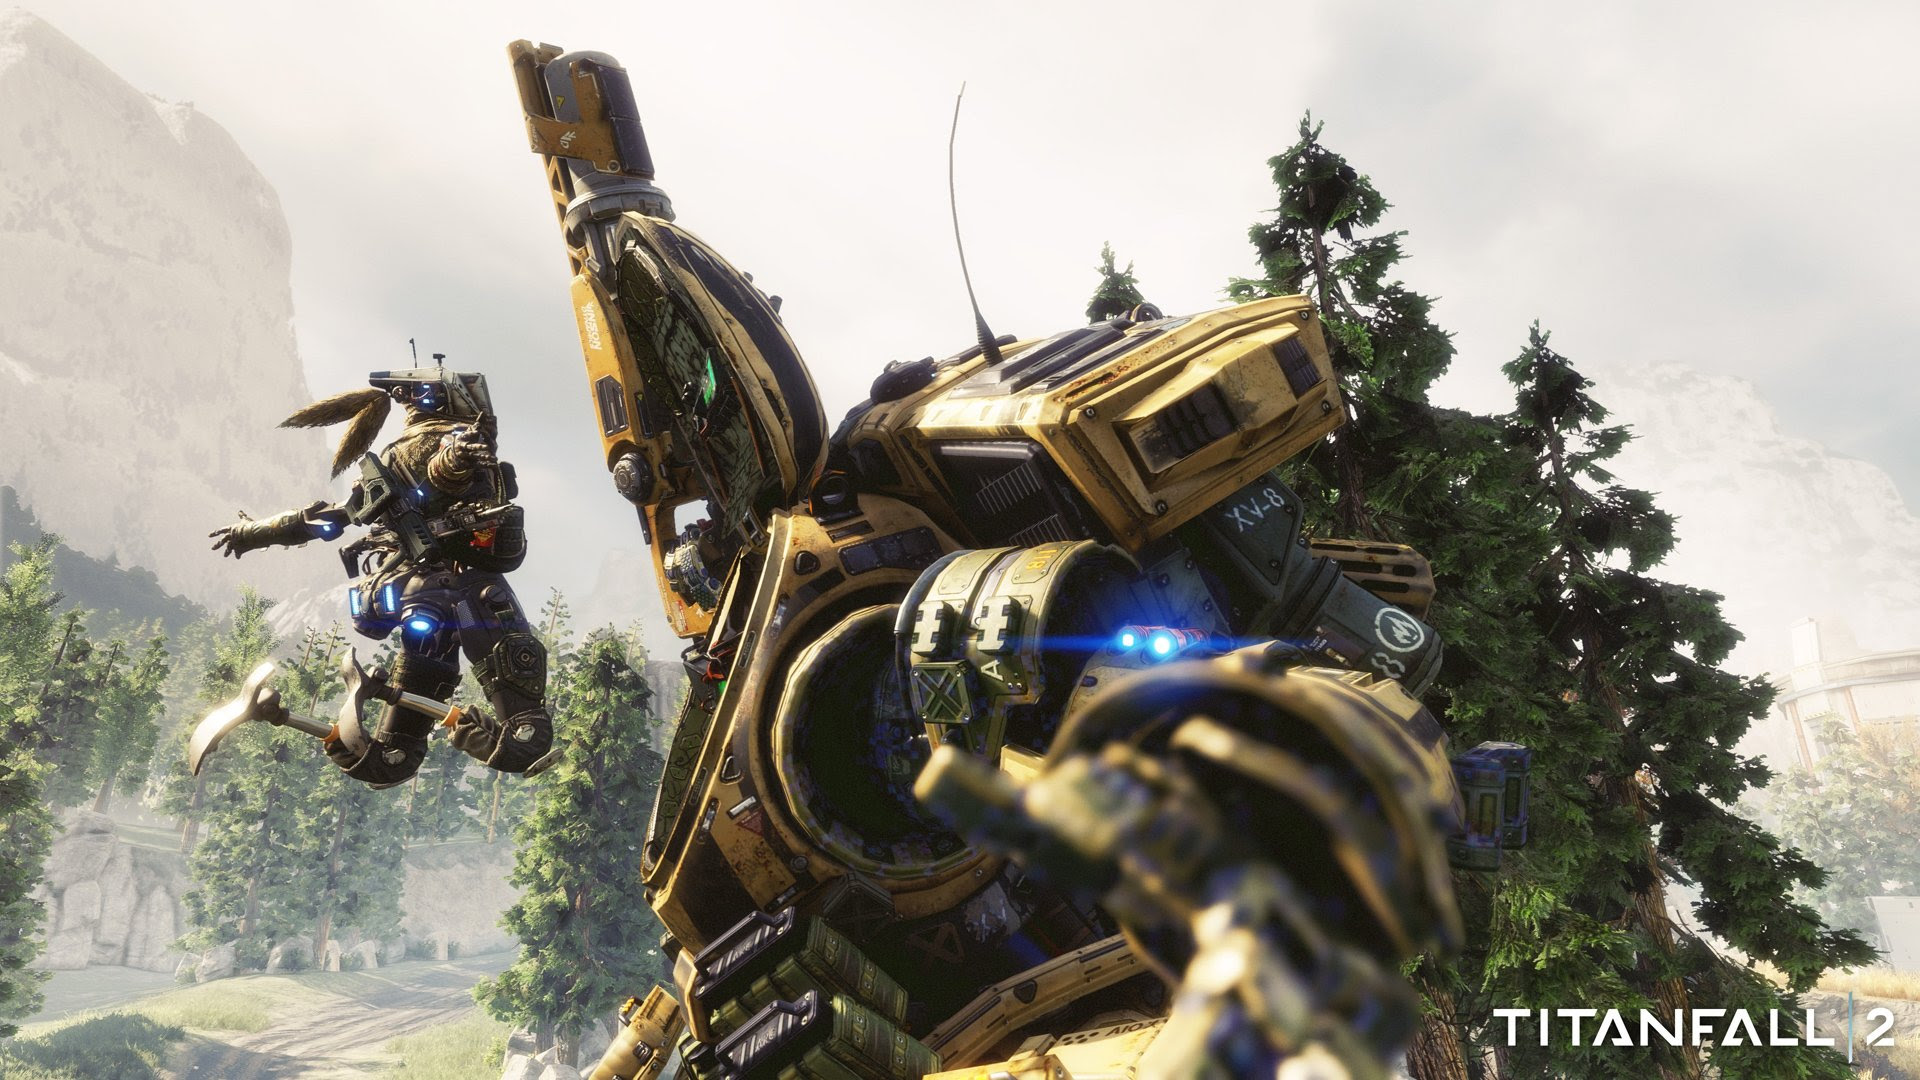 Titanfall 2 Deluxe is only $20 for consoles right now screenshot